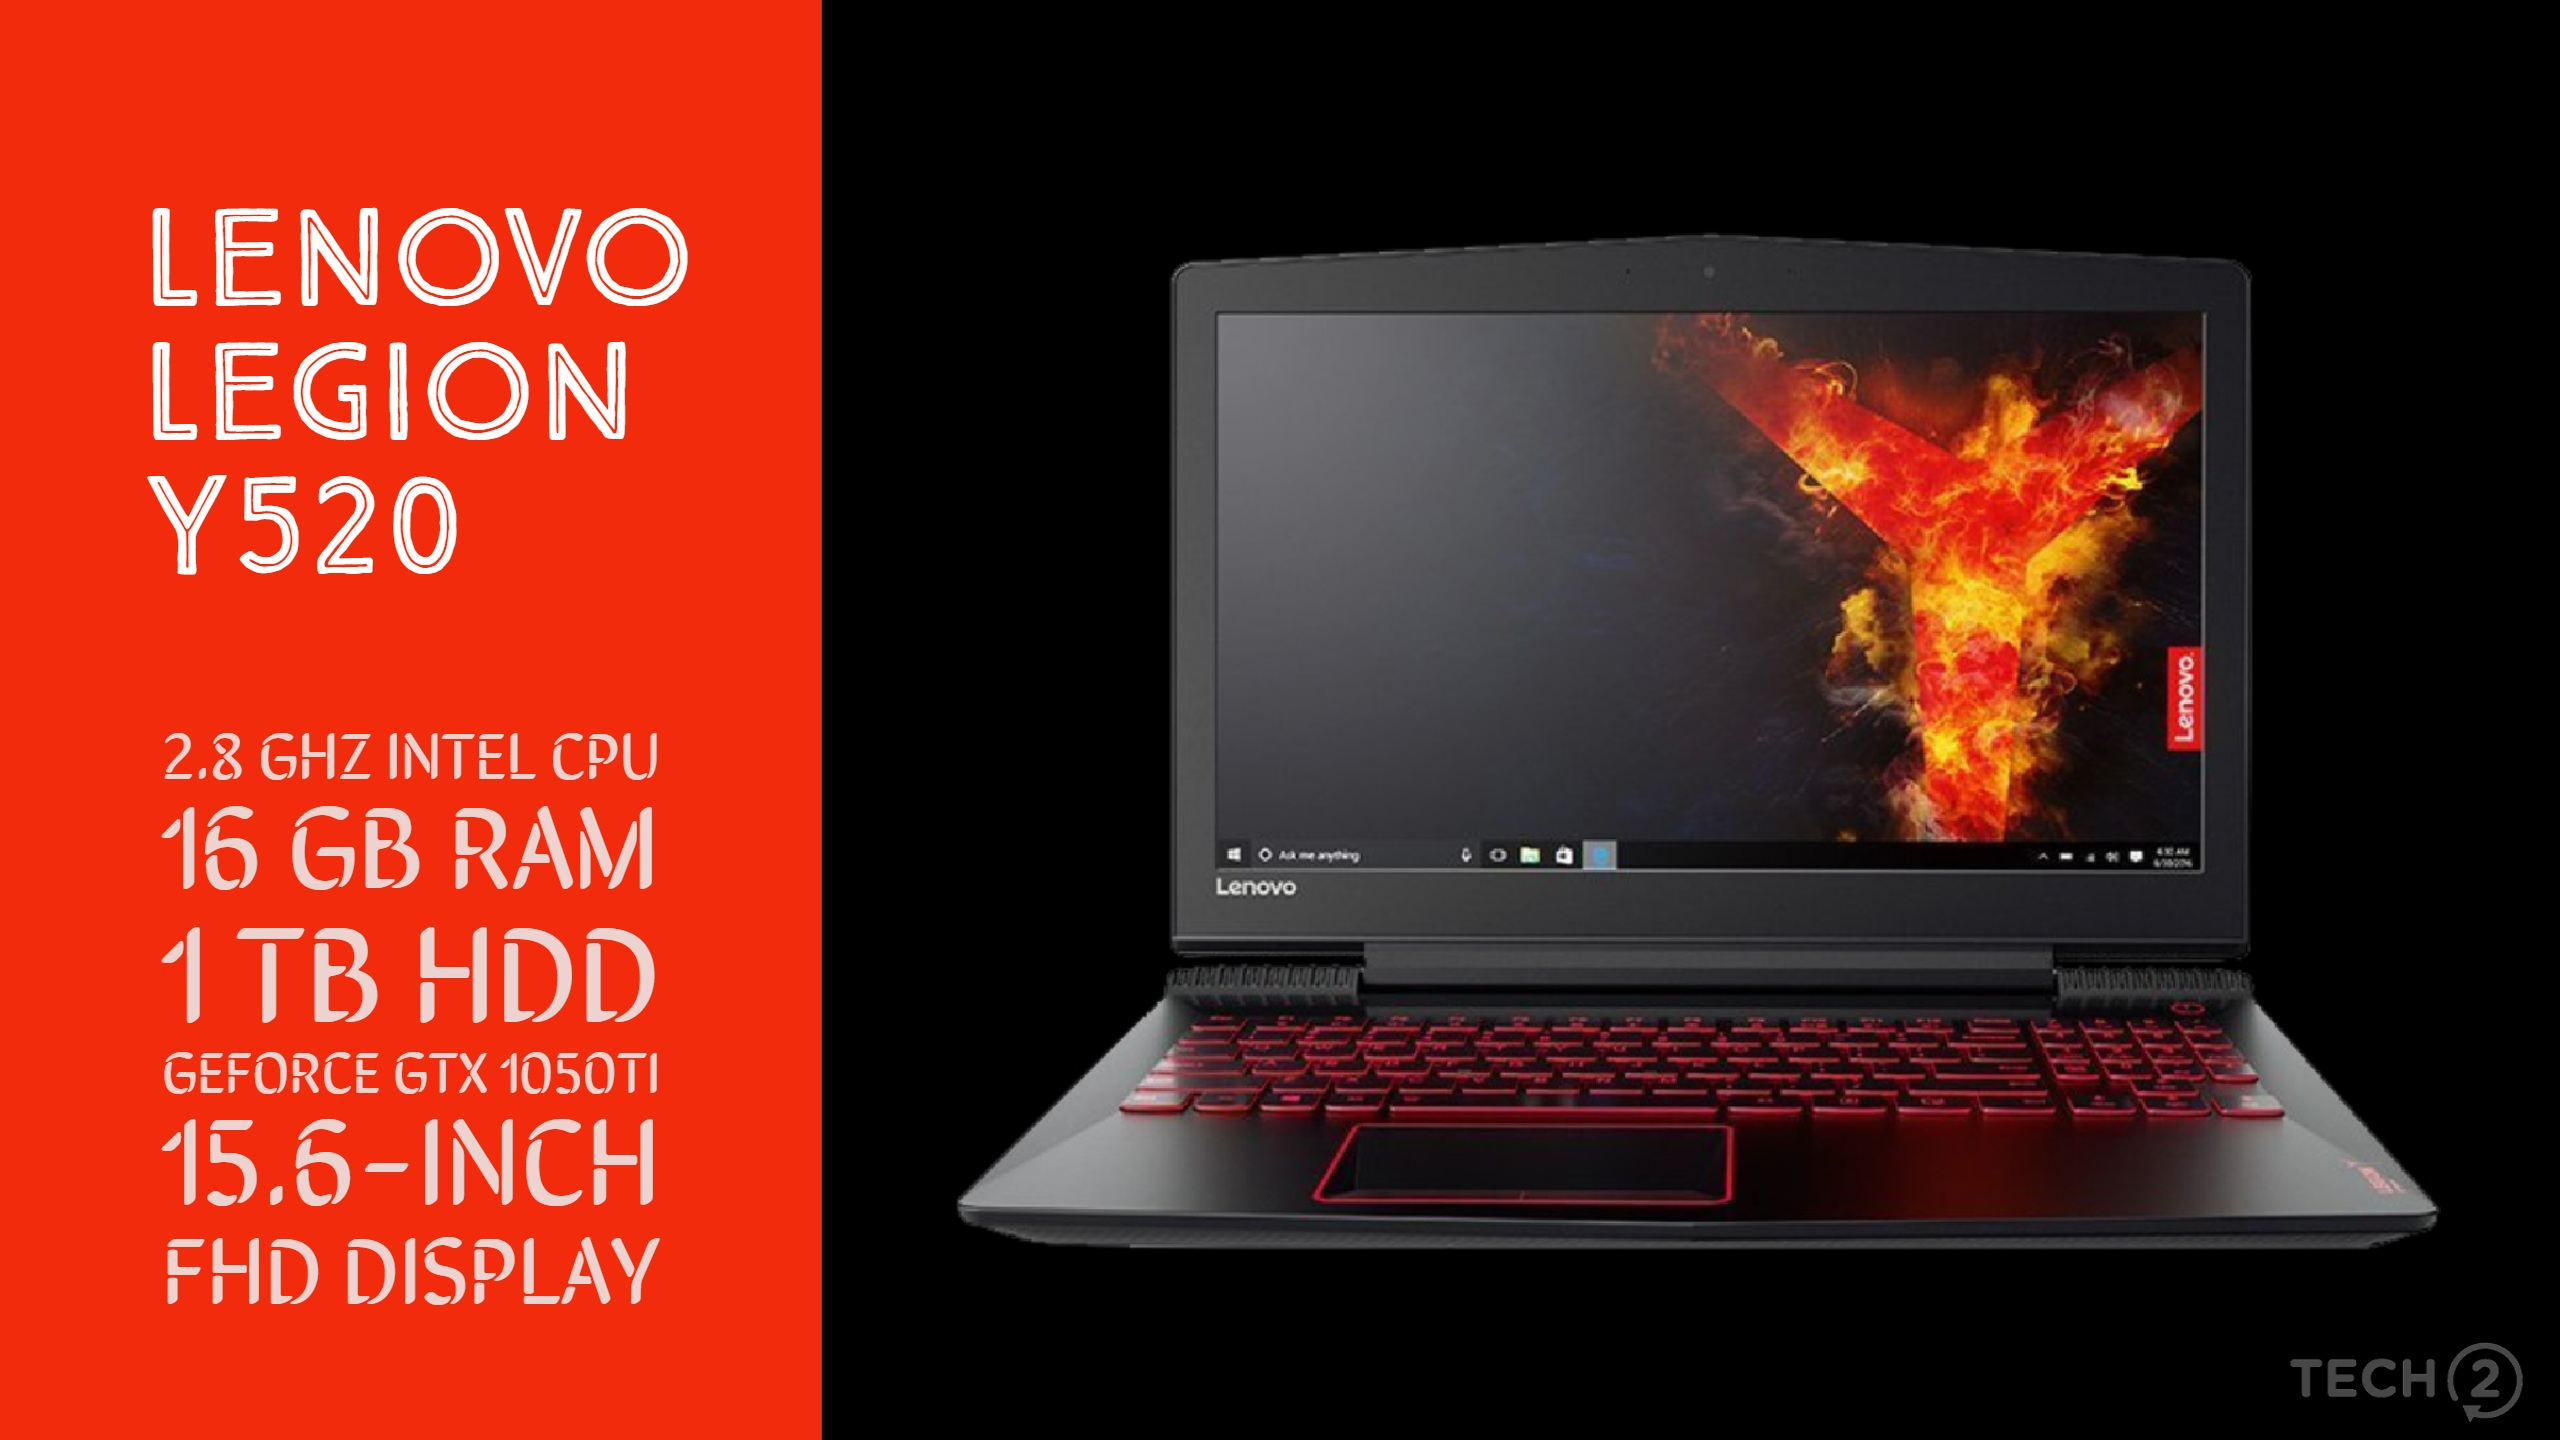 Your quest for an entry-level gaming laptop ends here